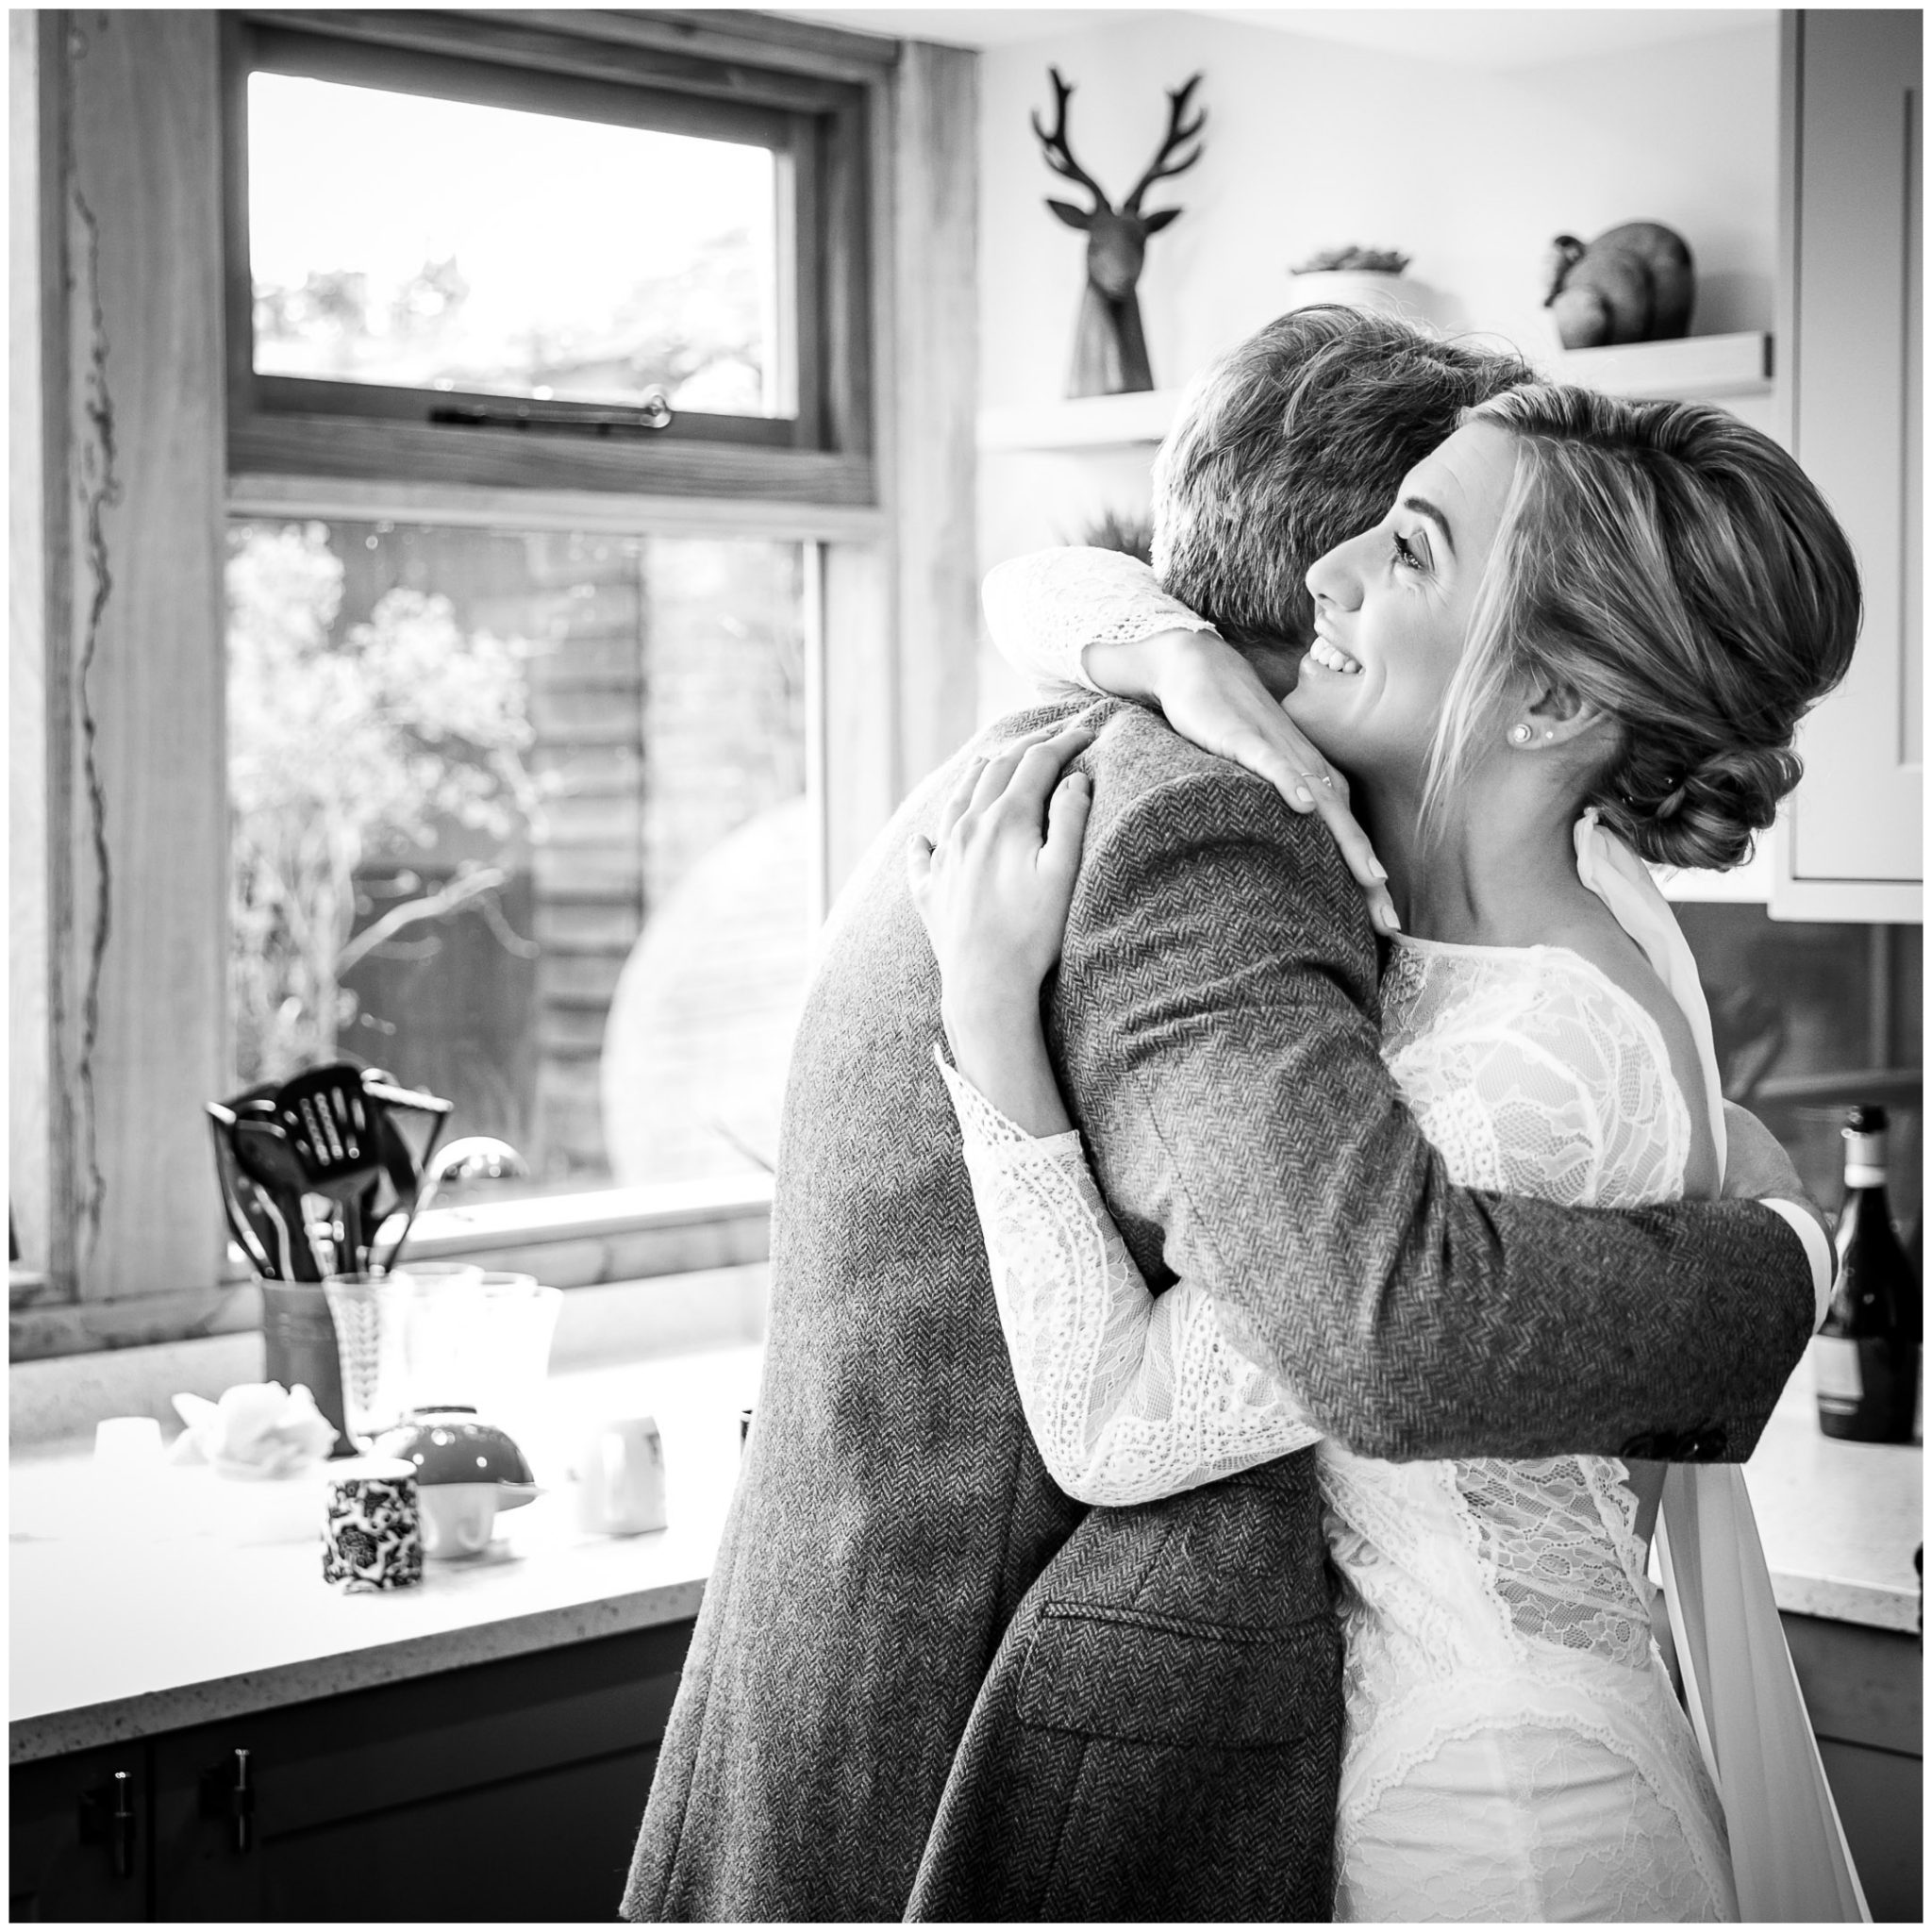 A hug for the bride before she sets off for the ceremony